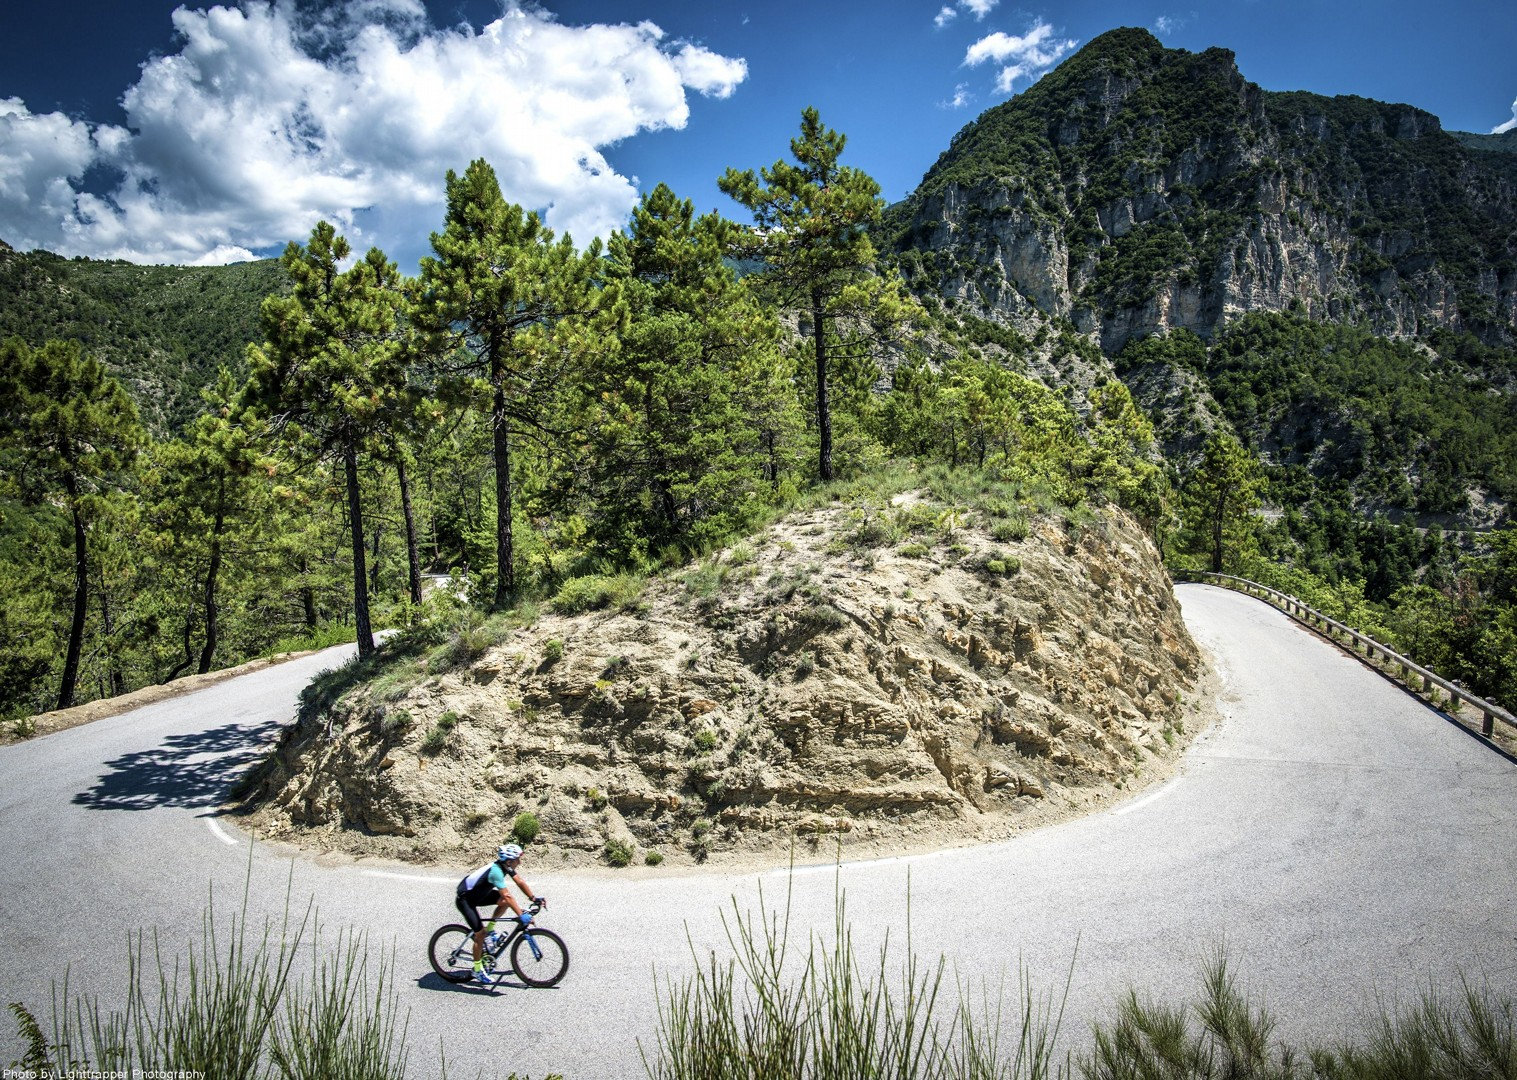 col-de-la-madone-france-bike-road-tour.jpg - France - Provence - Alpes Maritimes - Guided Road Cycling Holiday - Road Cycling